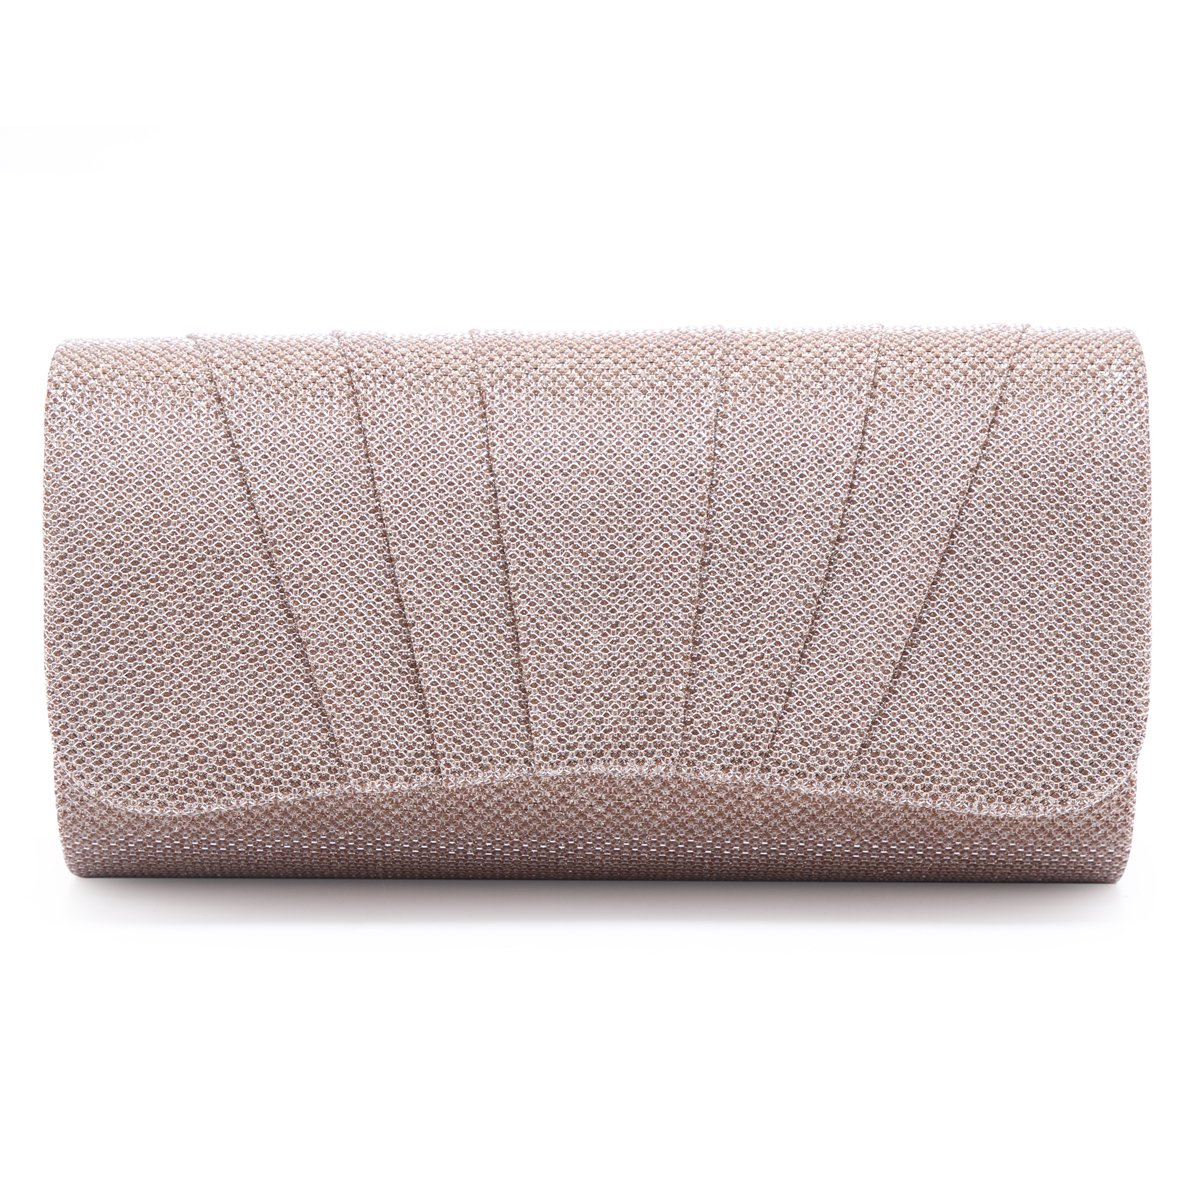 Damara Womens Perfectly Pleated Clutch Party bags (Champagne)